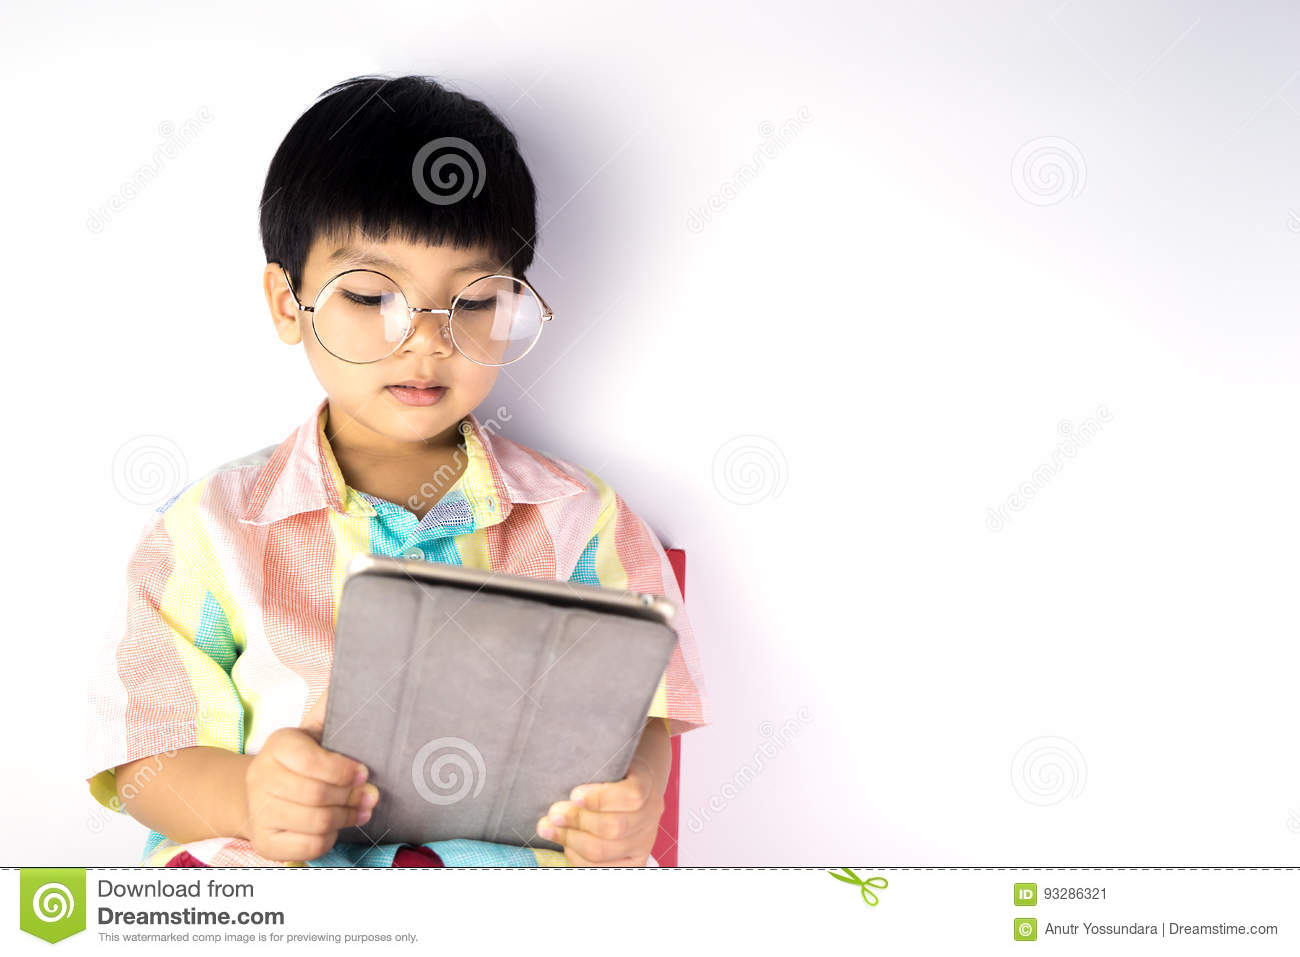 Nerdy Asian boy is reading on tablet